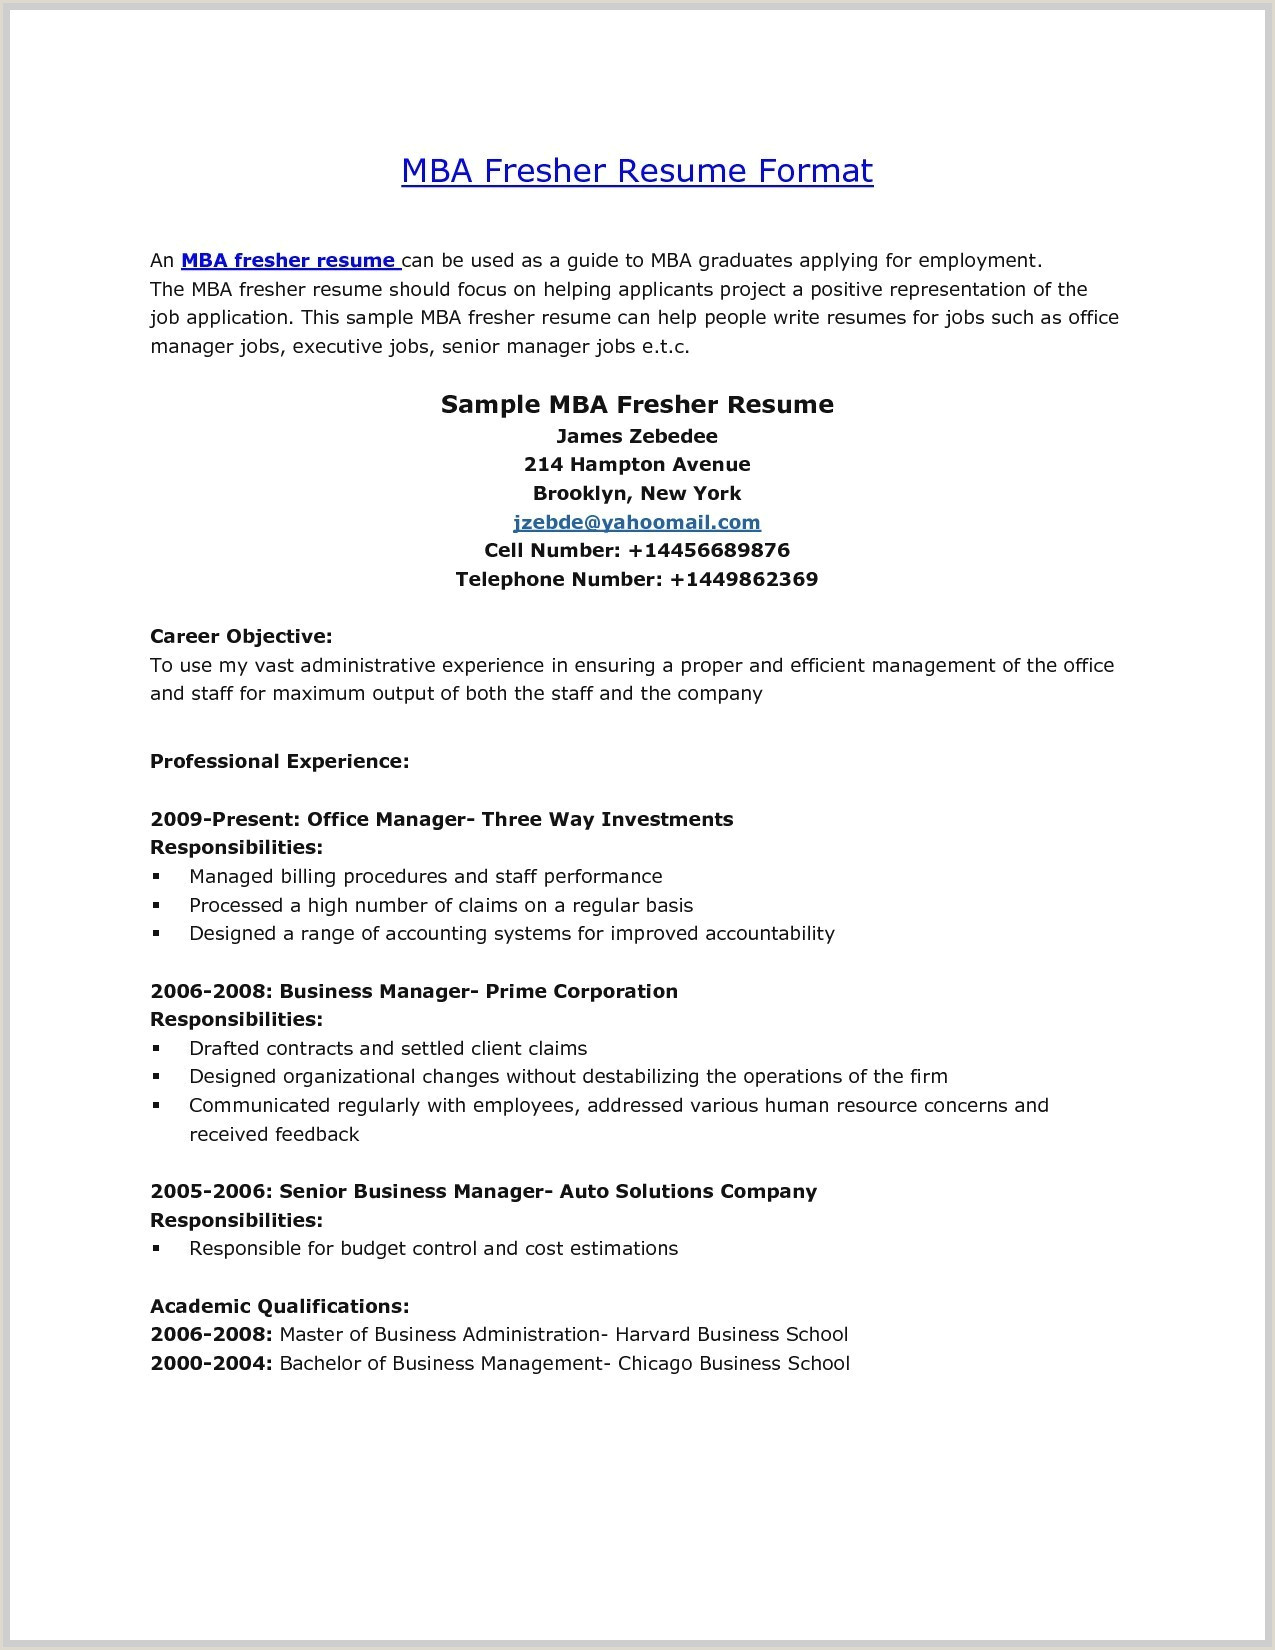 Fresher Cv Format For It Professional Hairstyles Mba Resume Sample Harvard Winning Marketing